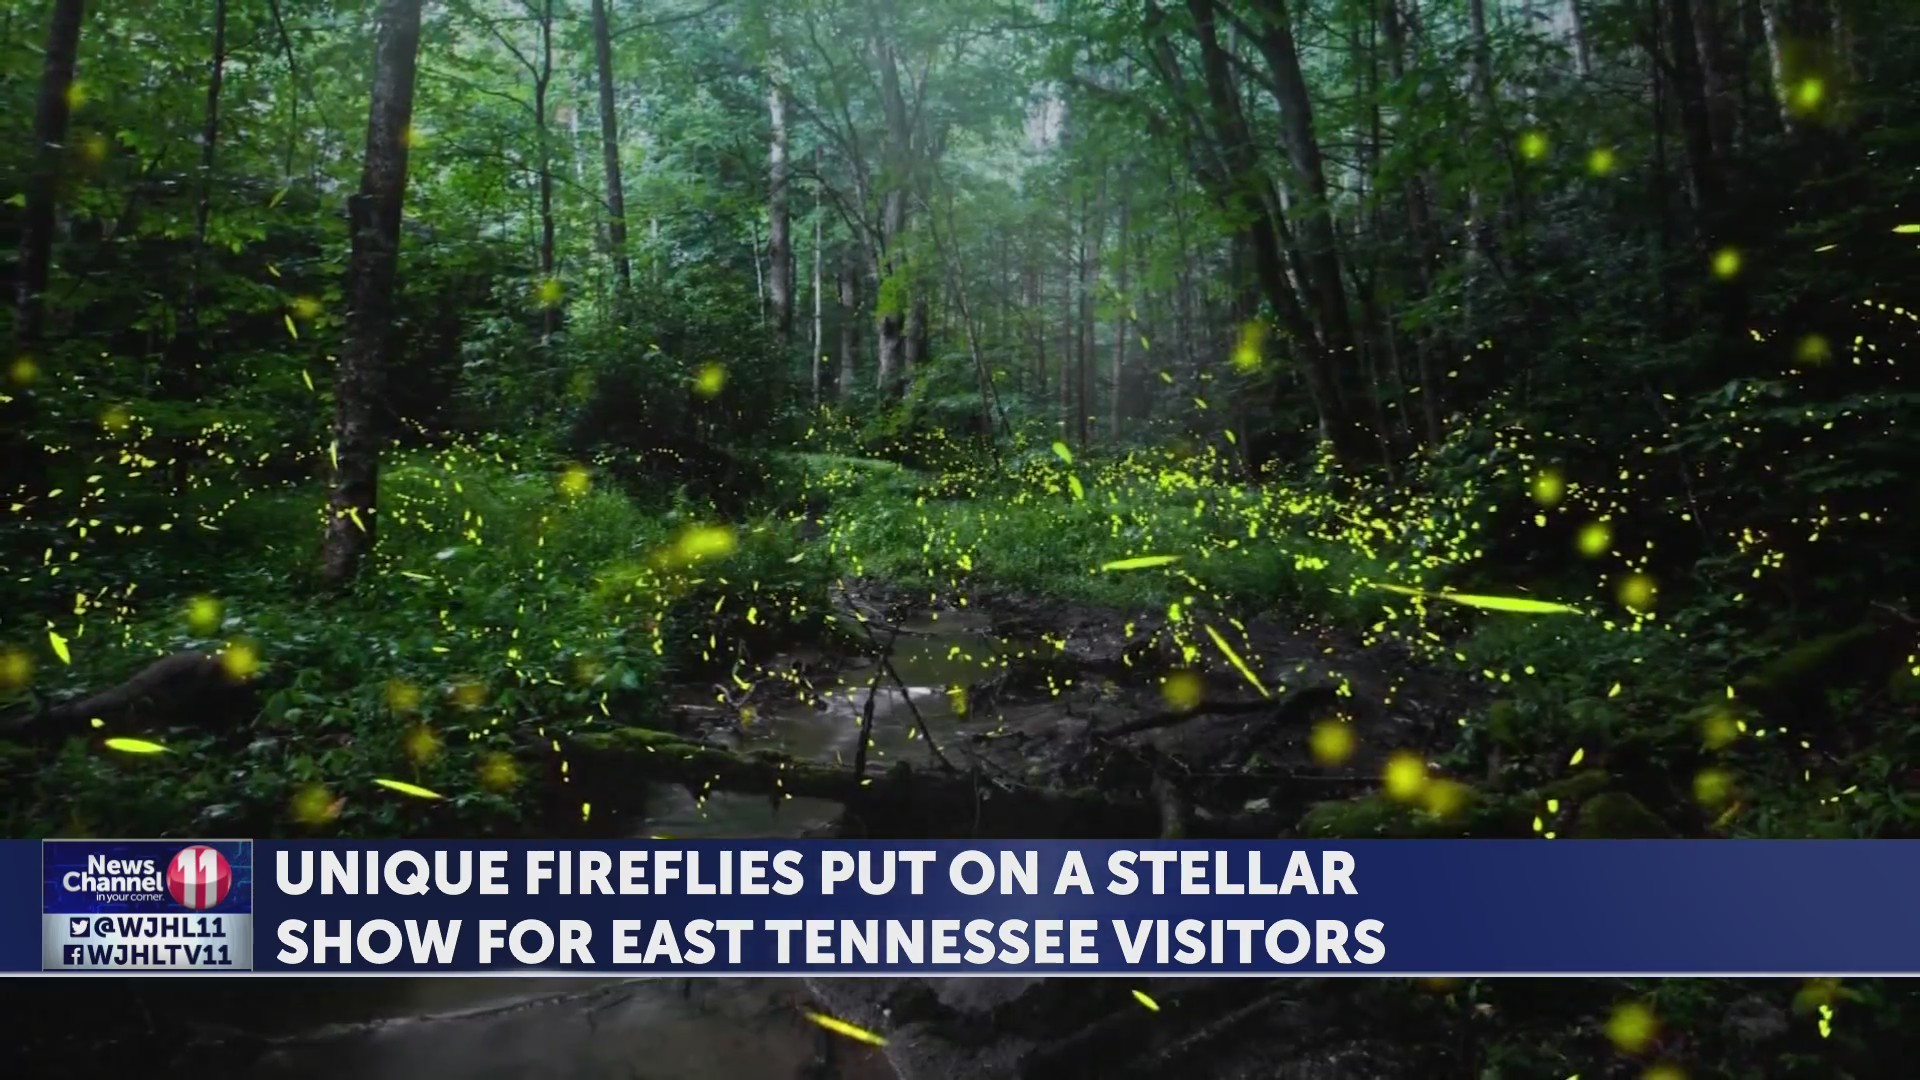 Unique fireflies put on a stellar show for East Tennessee visitors